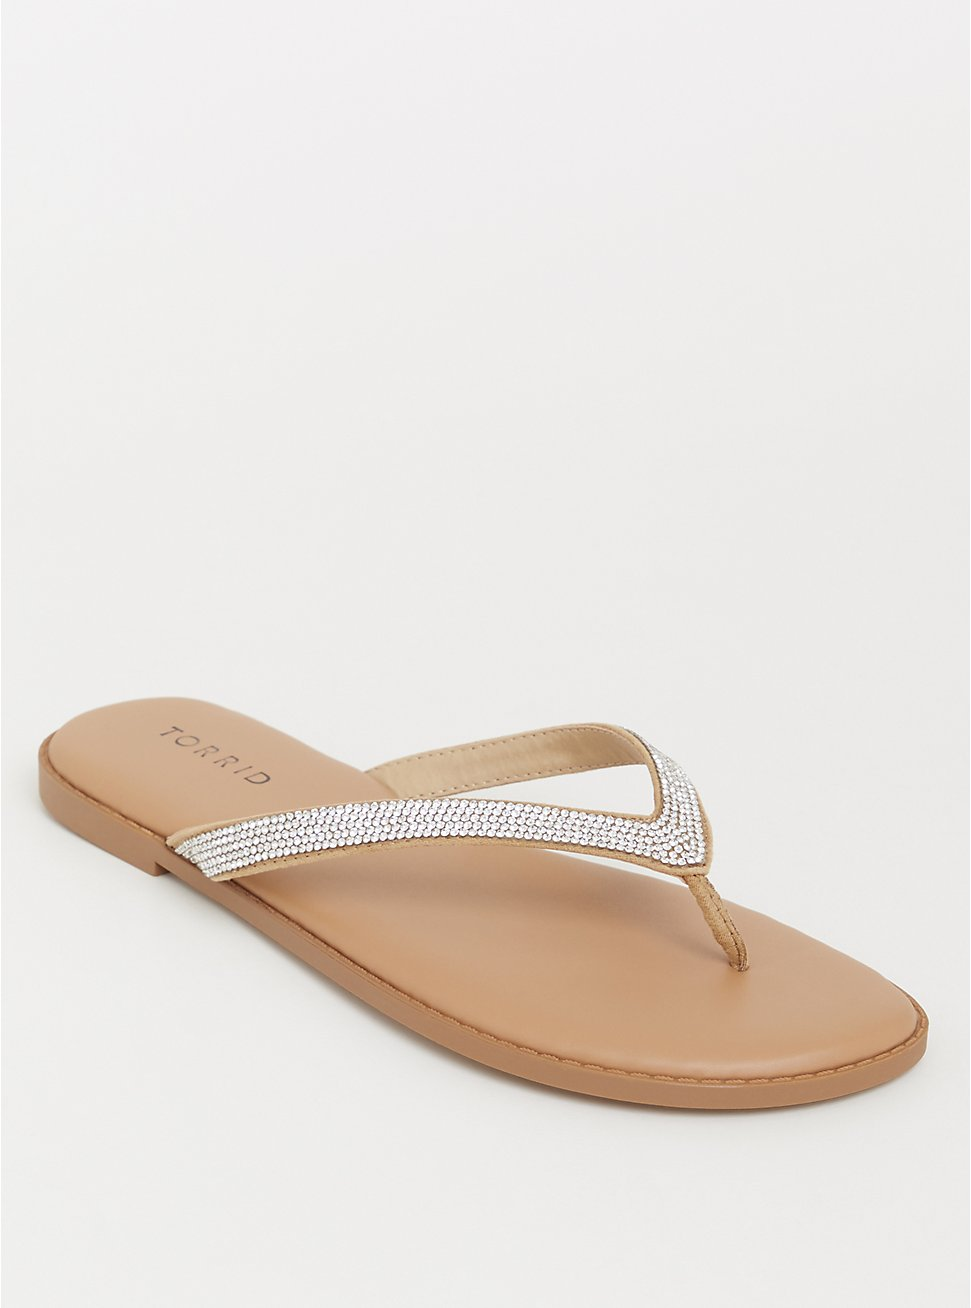 Tan Rhinestone Faux Leather Flip Flop (WW), , hi-res